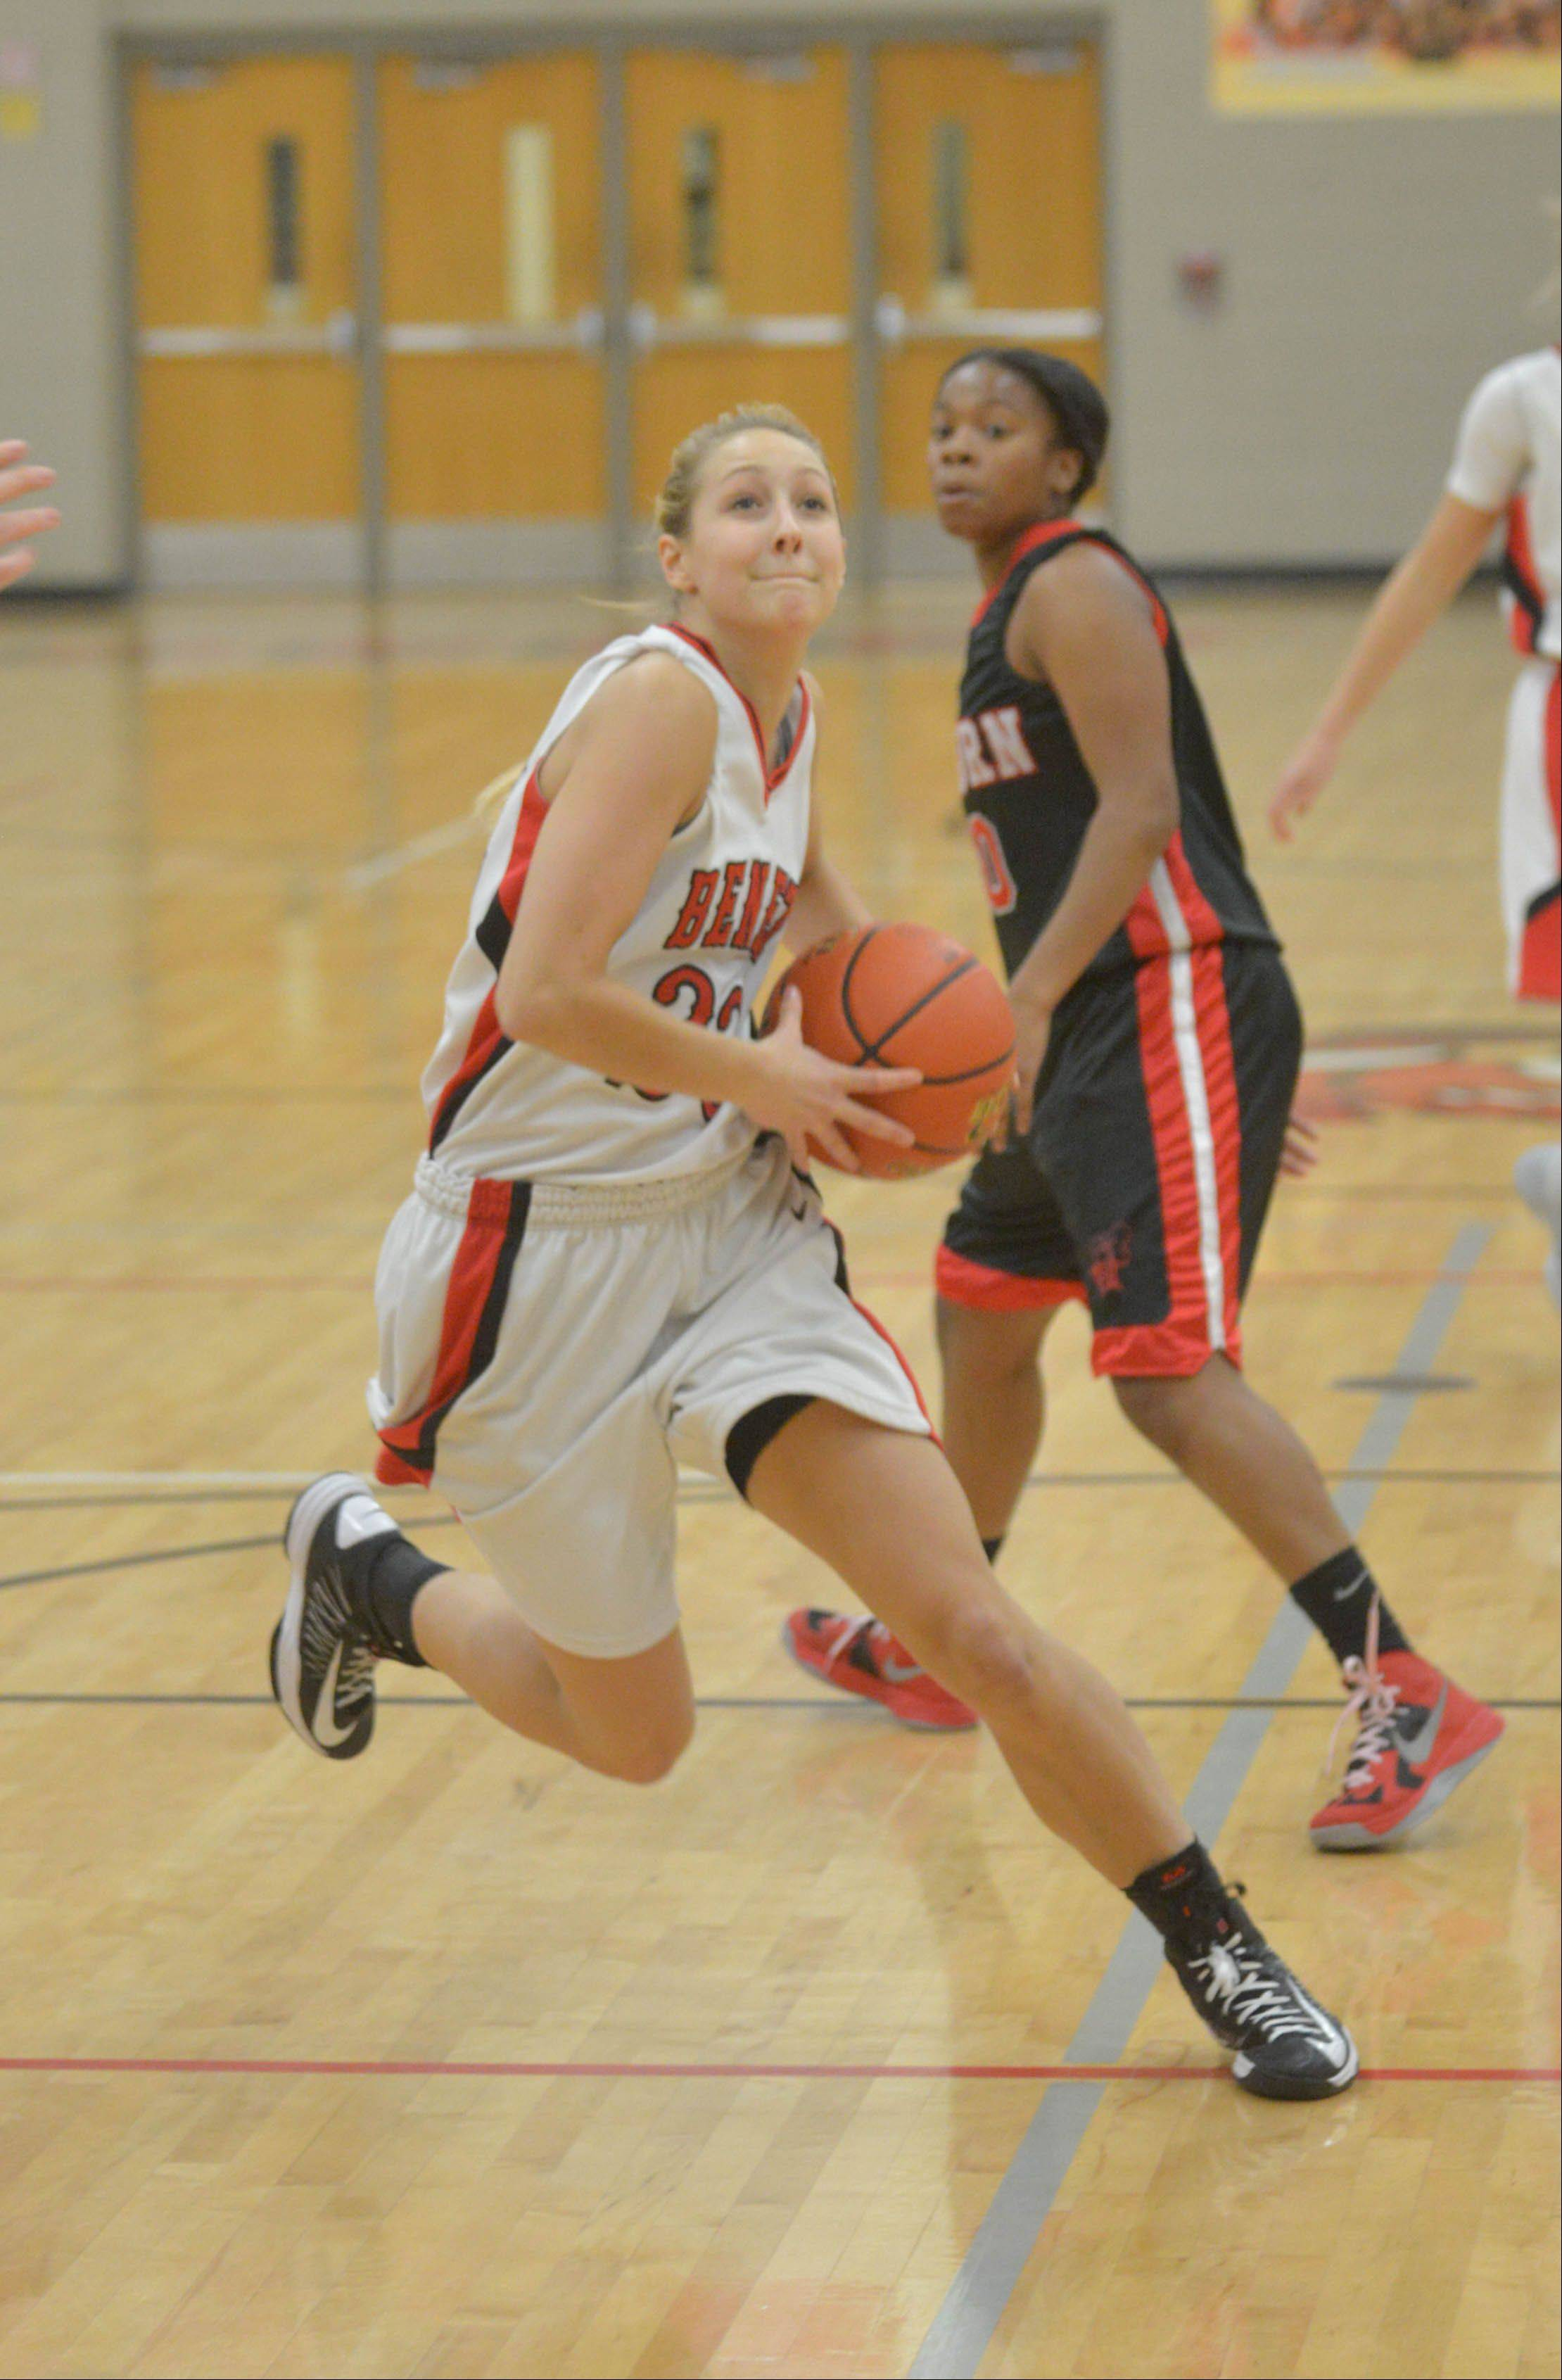 Emily Eshoo moves towards the net during the Rockford Auburn at Benet girls basketball game Friday.